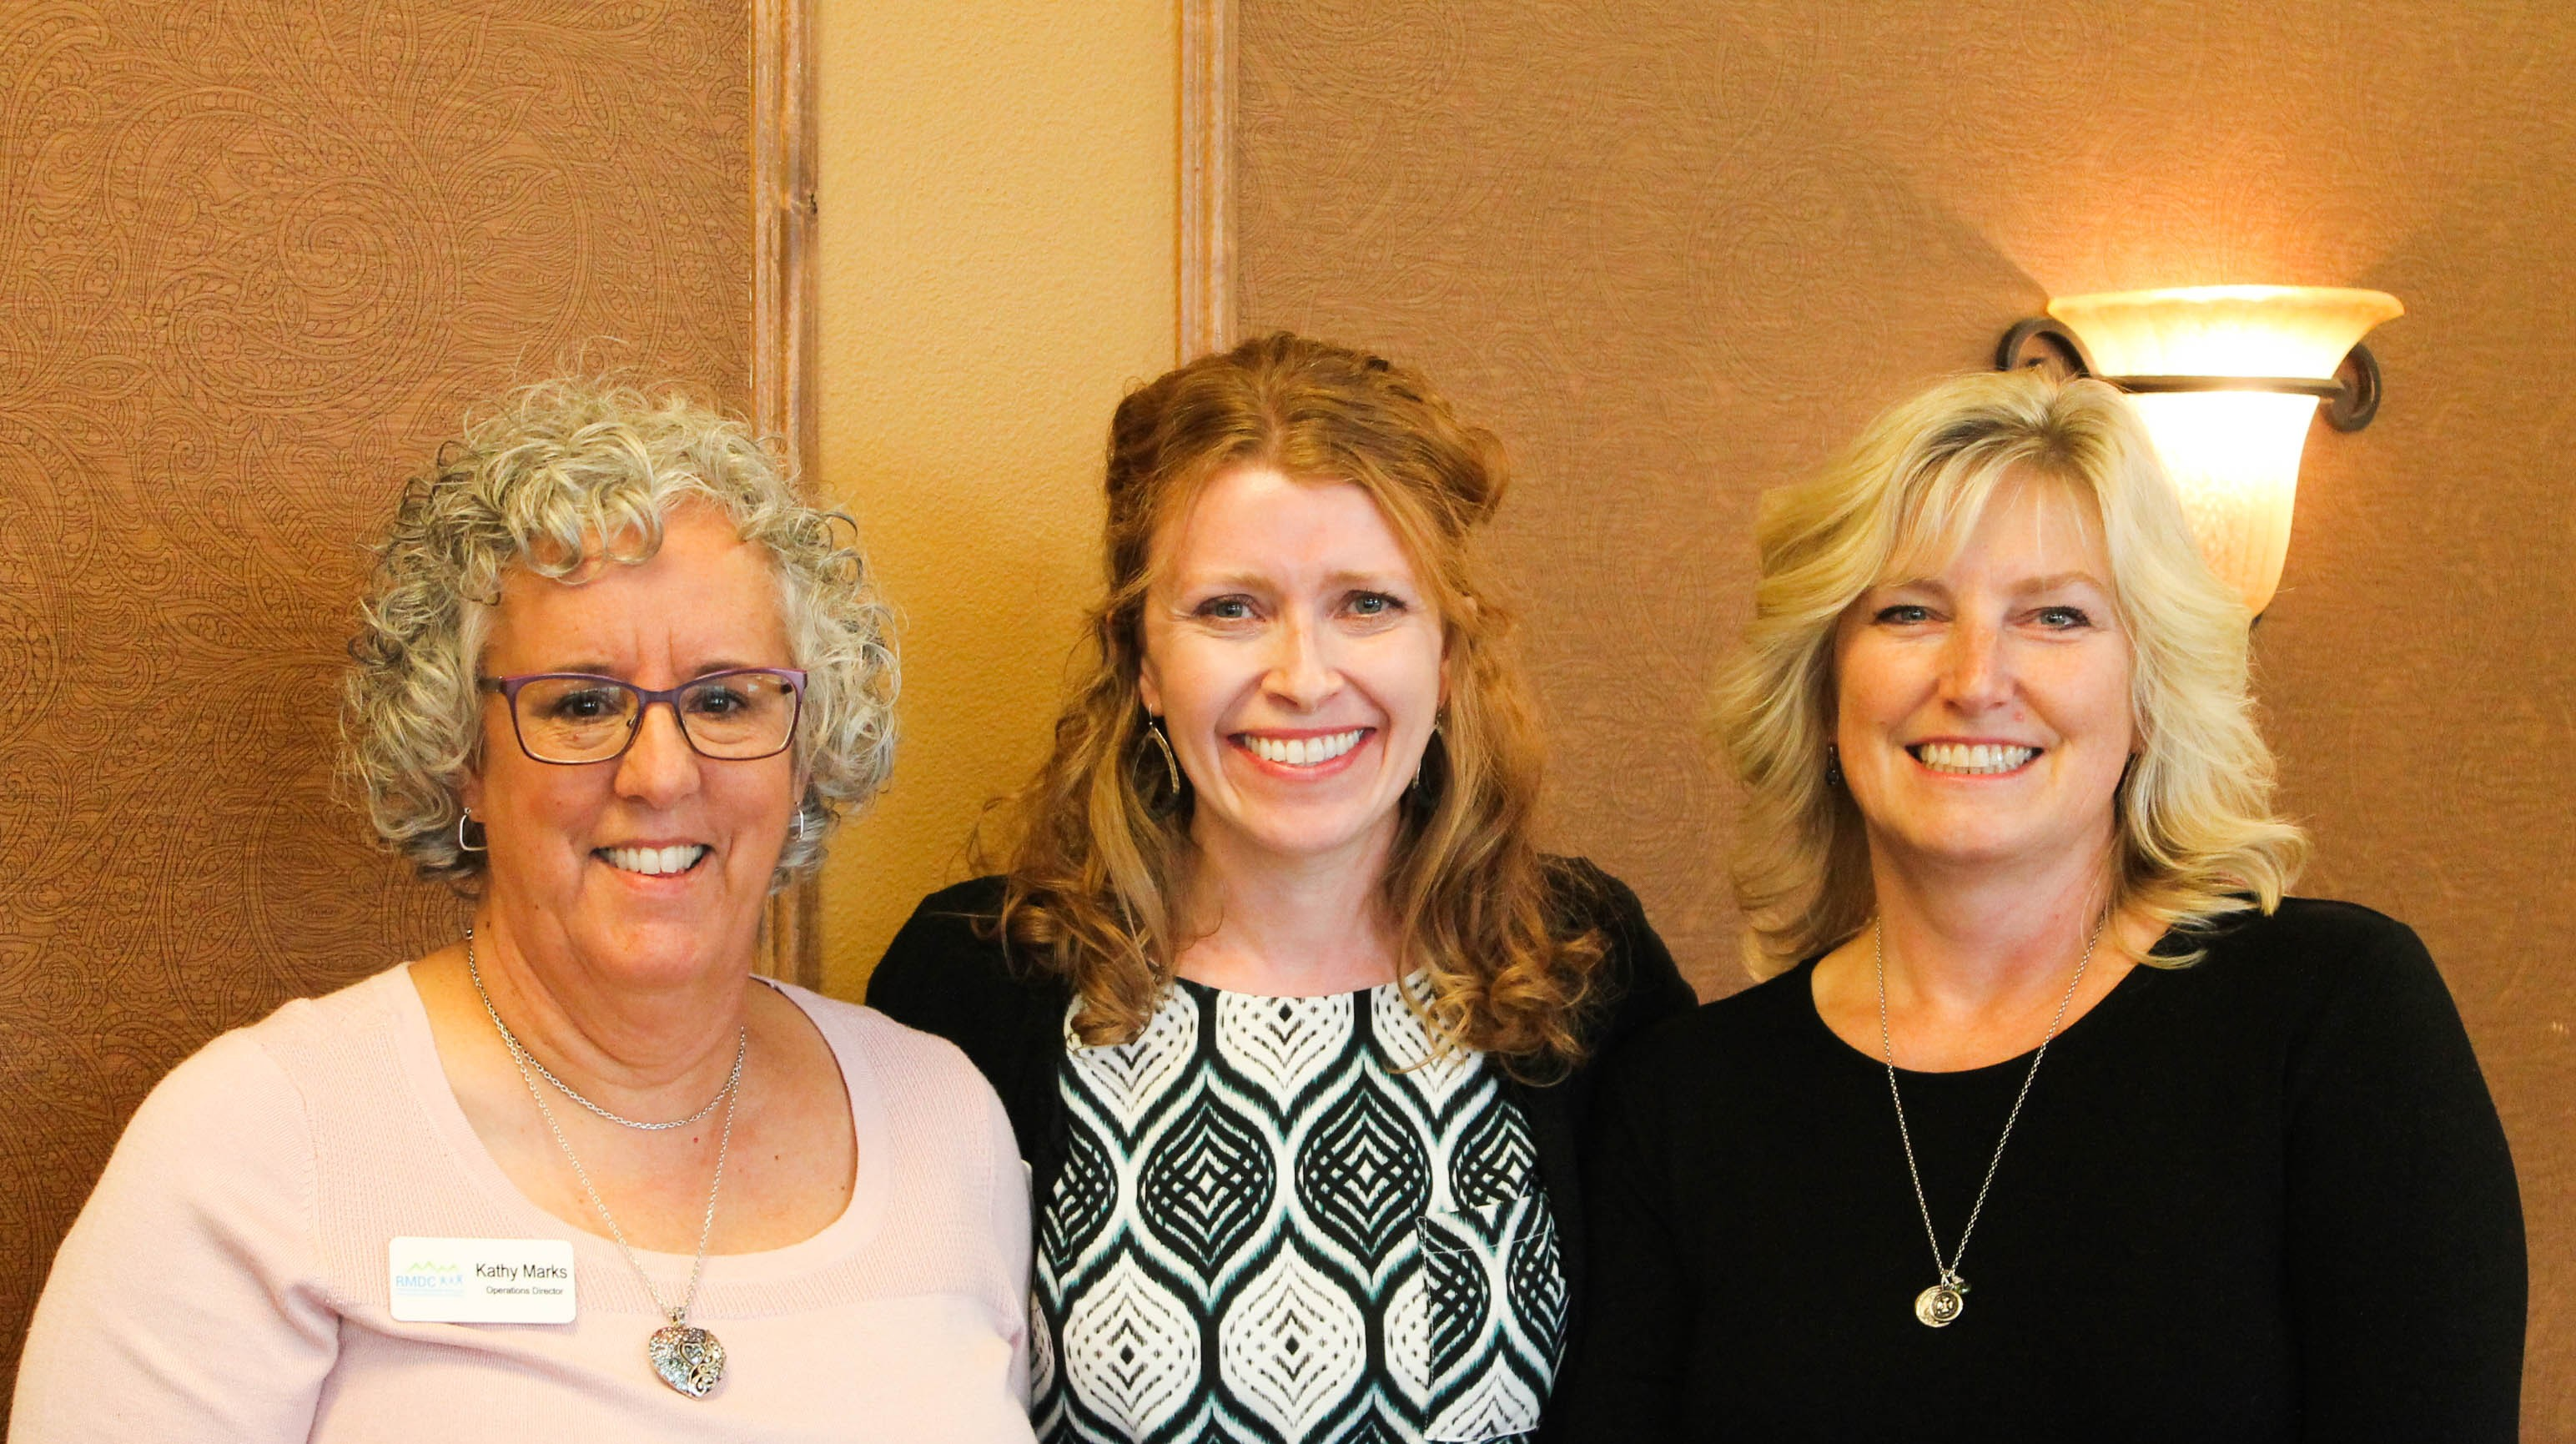 Photo of Lori, Kathy and Chrisy at Rocky first annual Bingo Bash!